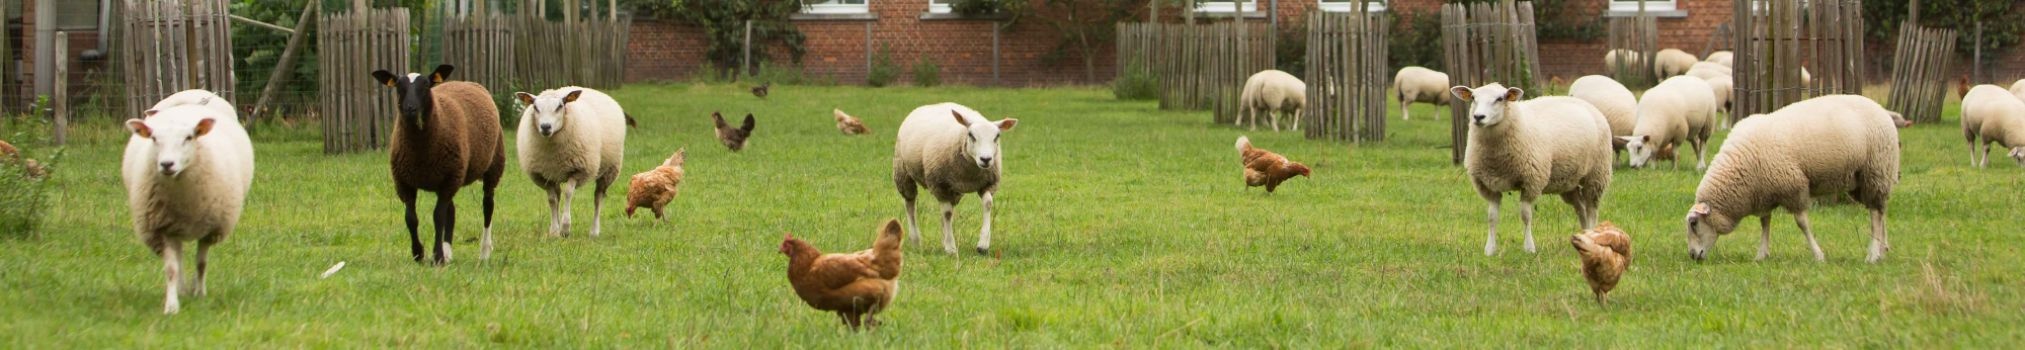 Sheep and hens ranging freely across a meadow inside the abbey walls.